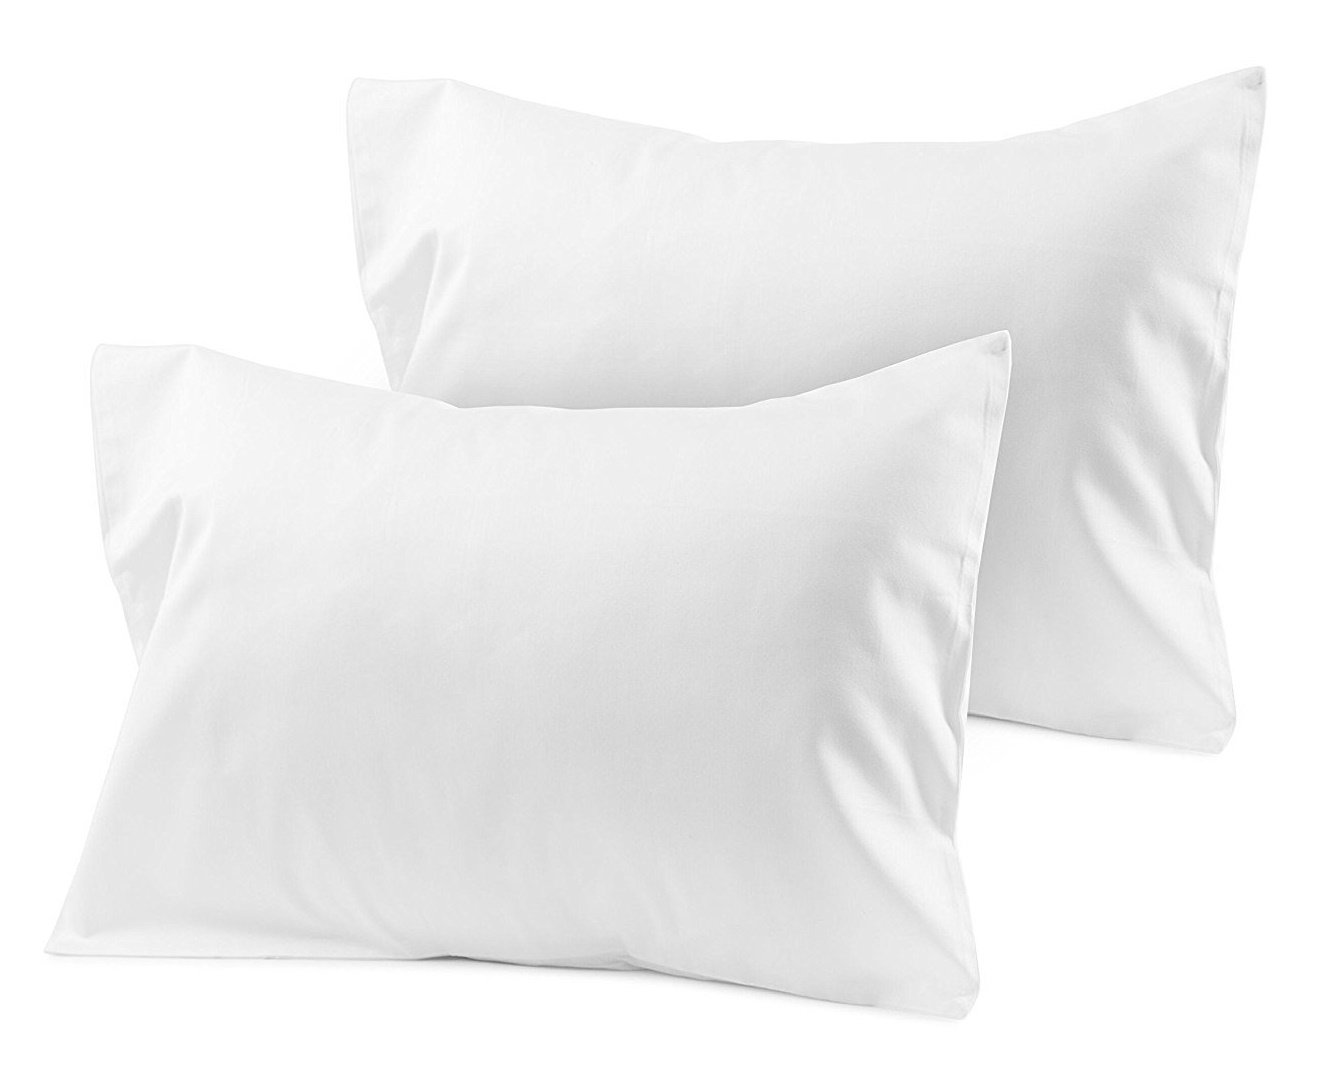 Travel Pillowcase 12X16 500 Thread Count Organic Cotton Set of 2 Toddler Pillowcase With Zipper Closer White Solid With 100% Egyptian Cotton (Toddler Travel 12X16 White Solid) Om Bedding collection